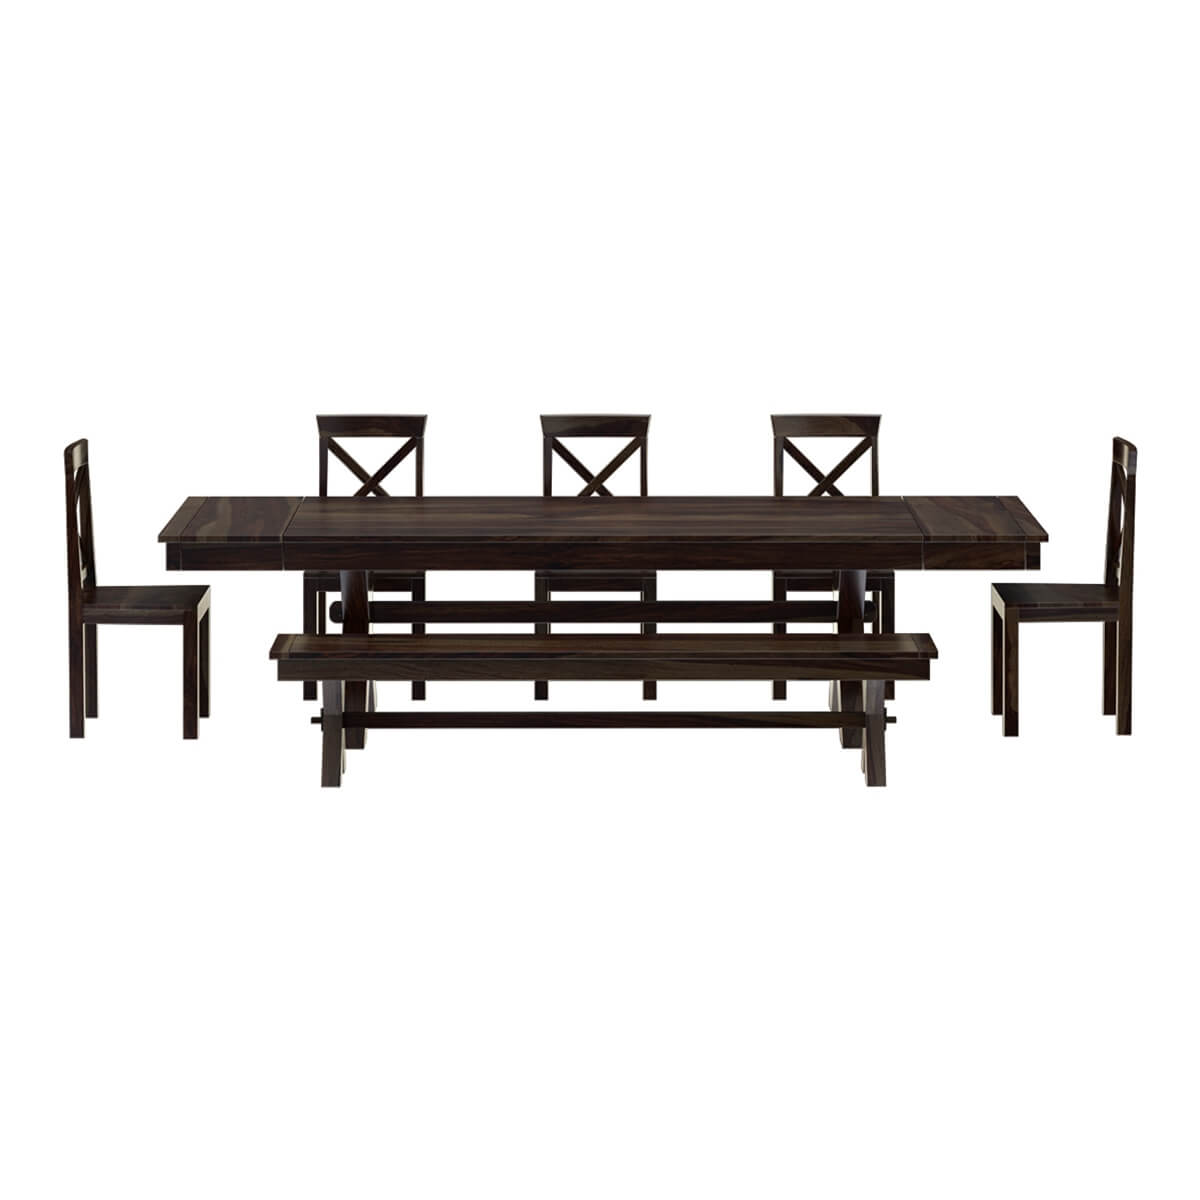 Westside indoor picnic style dining table bench set with for Table and bench set